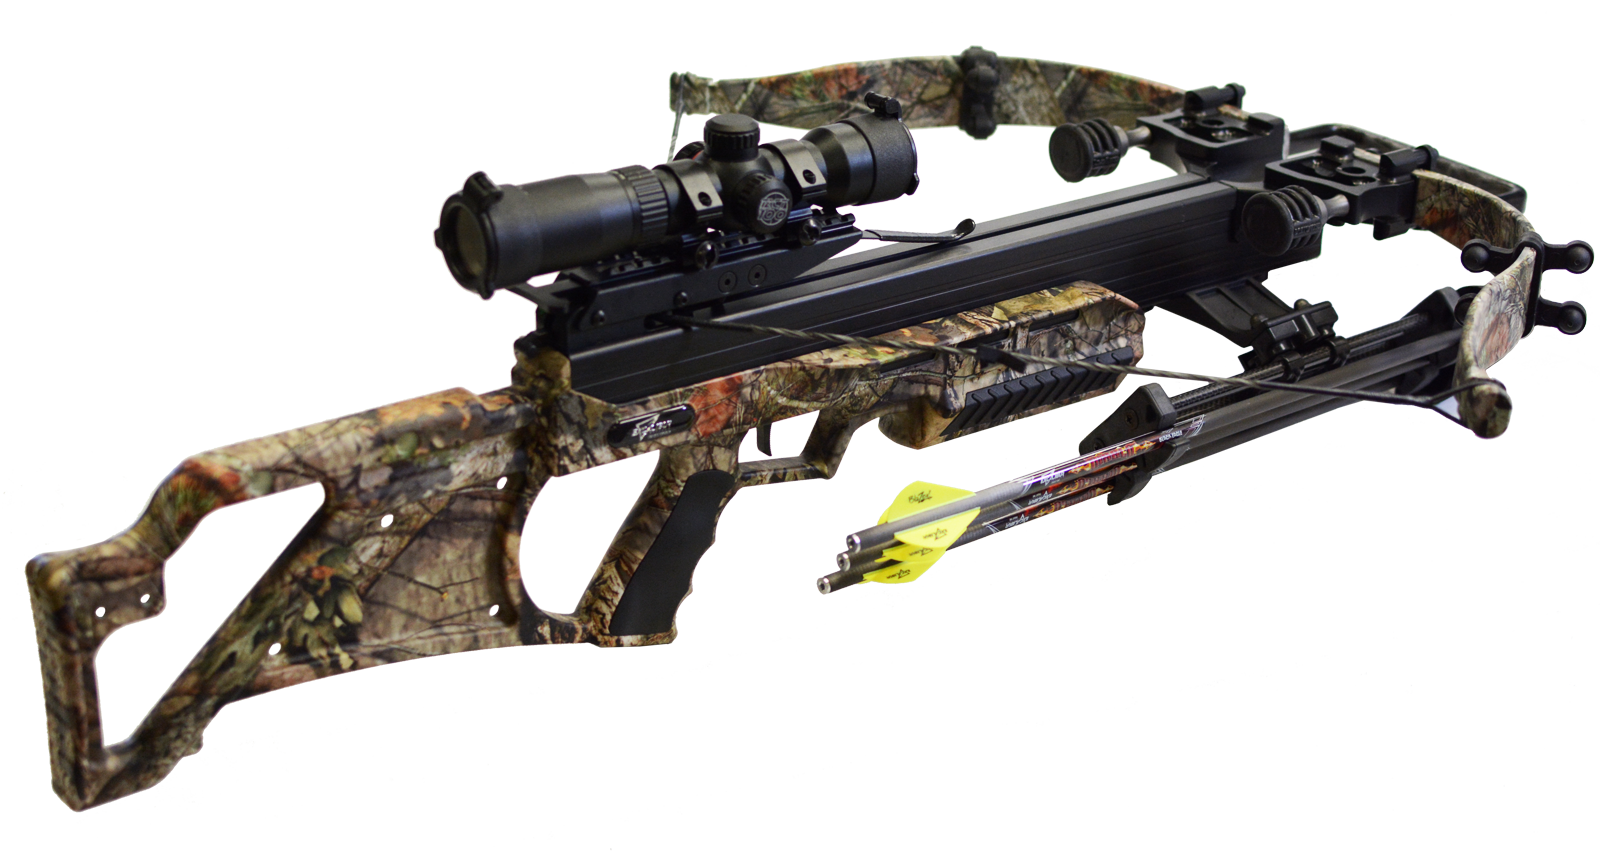 BULLDOG 385 CUSTOMIZED CAMO s optikou Excalibur TACT 100 a lícnicí